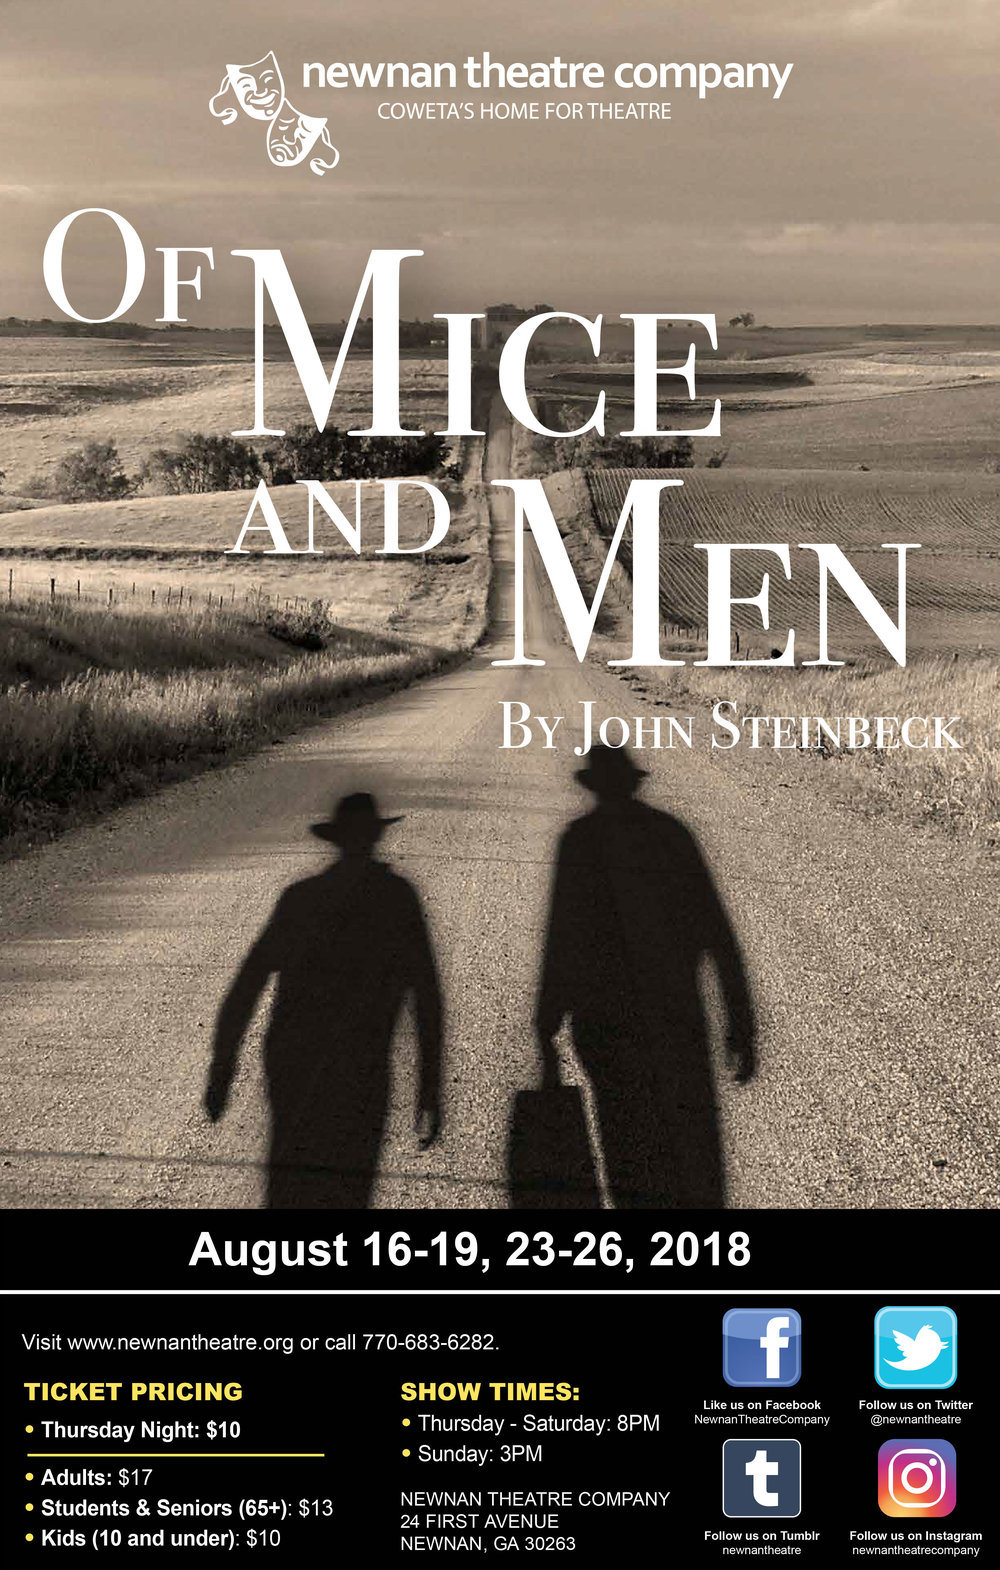 Of Mice and Men_poster 11x17.jpg